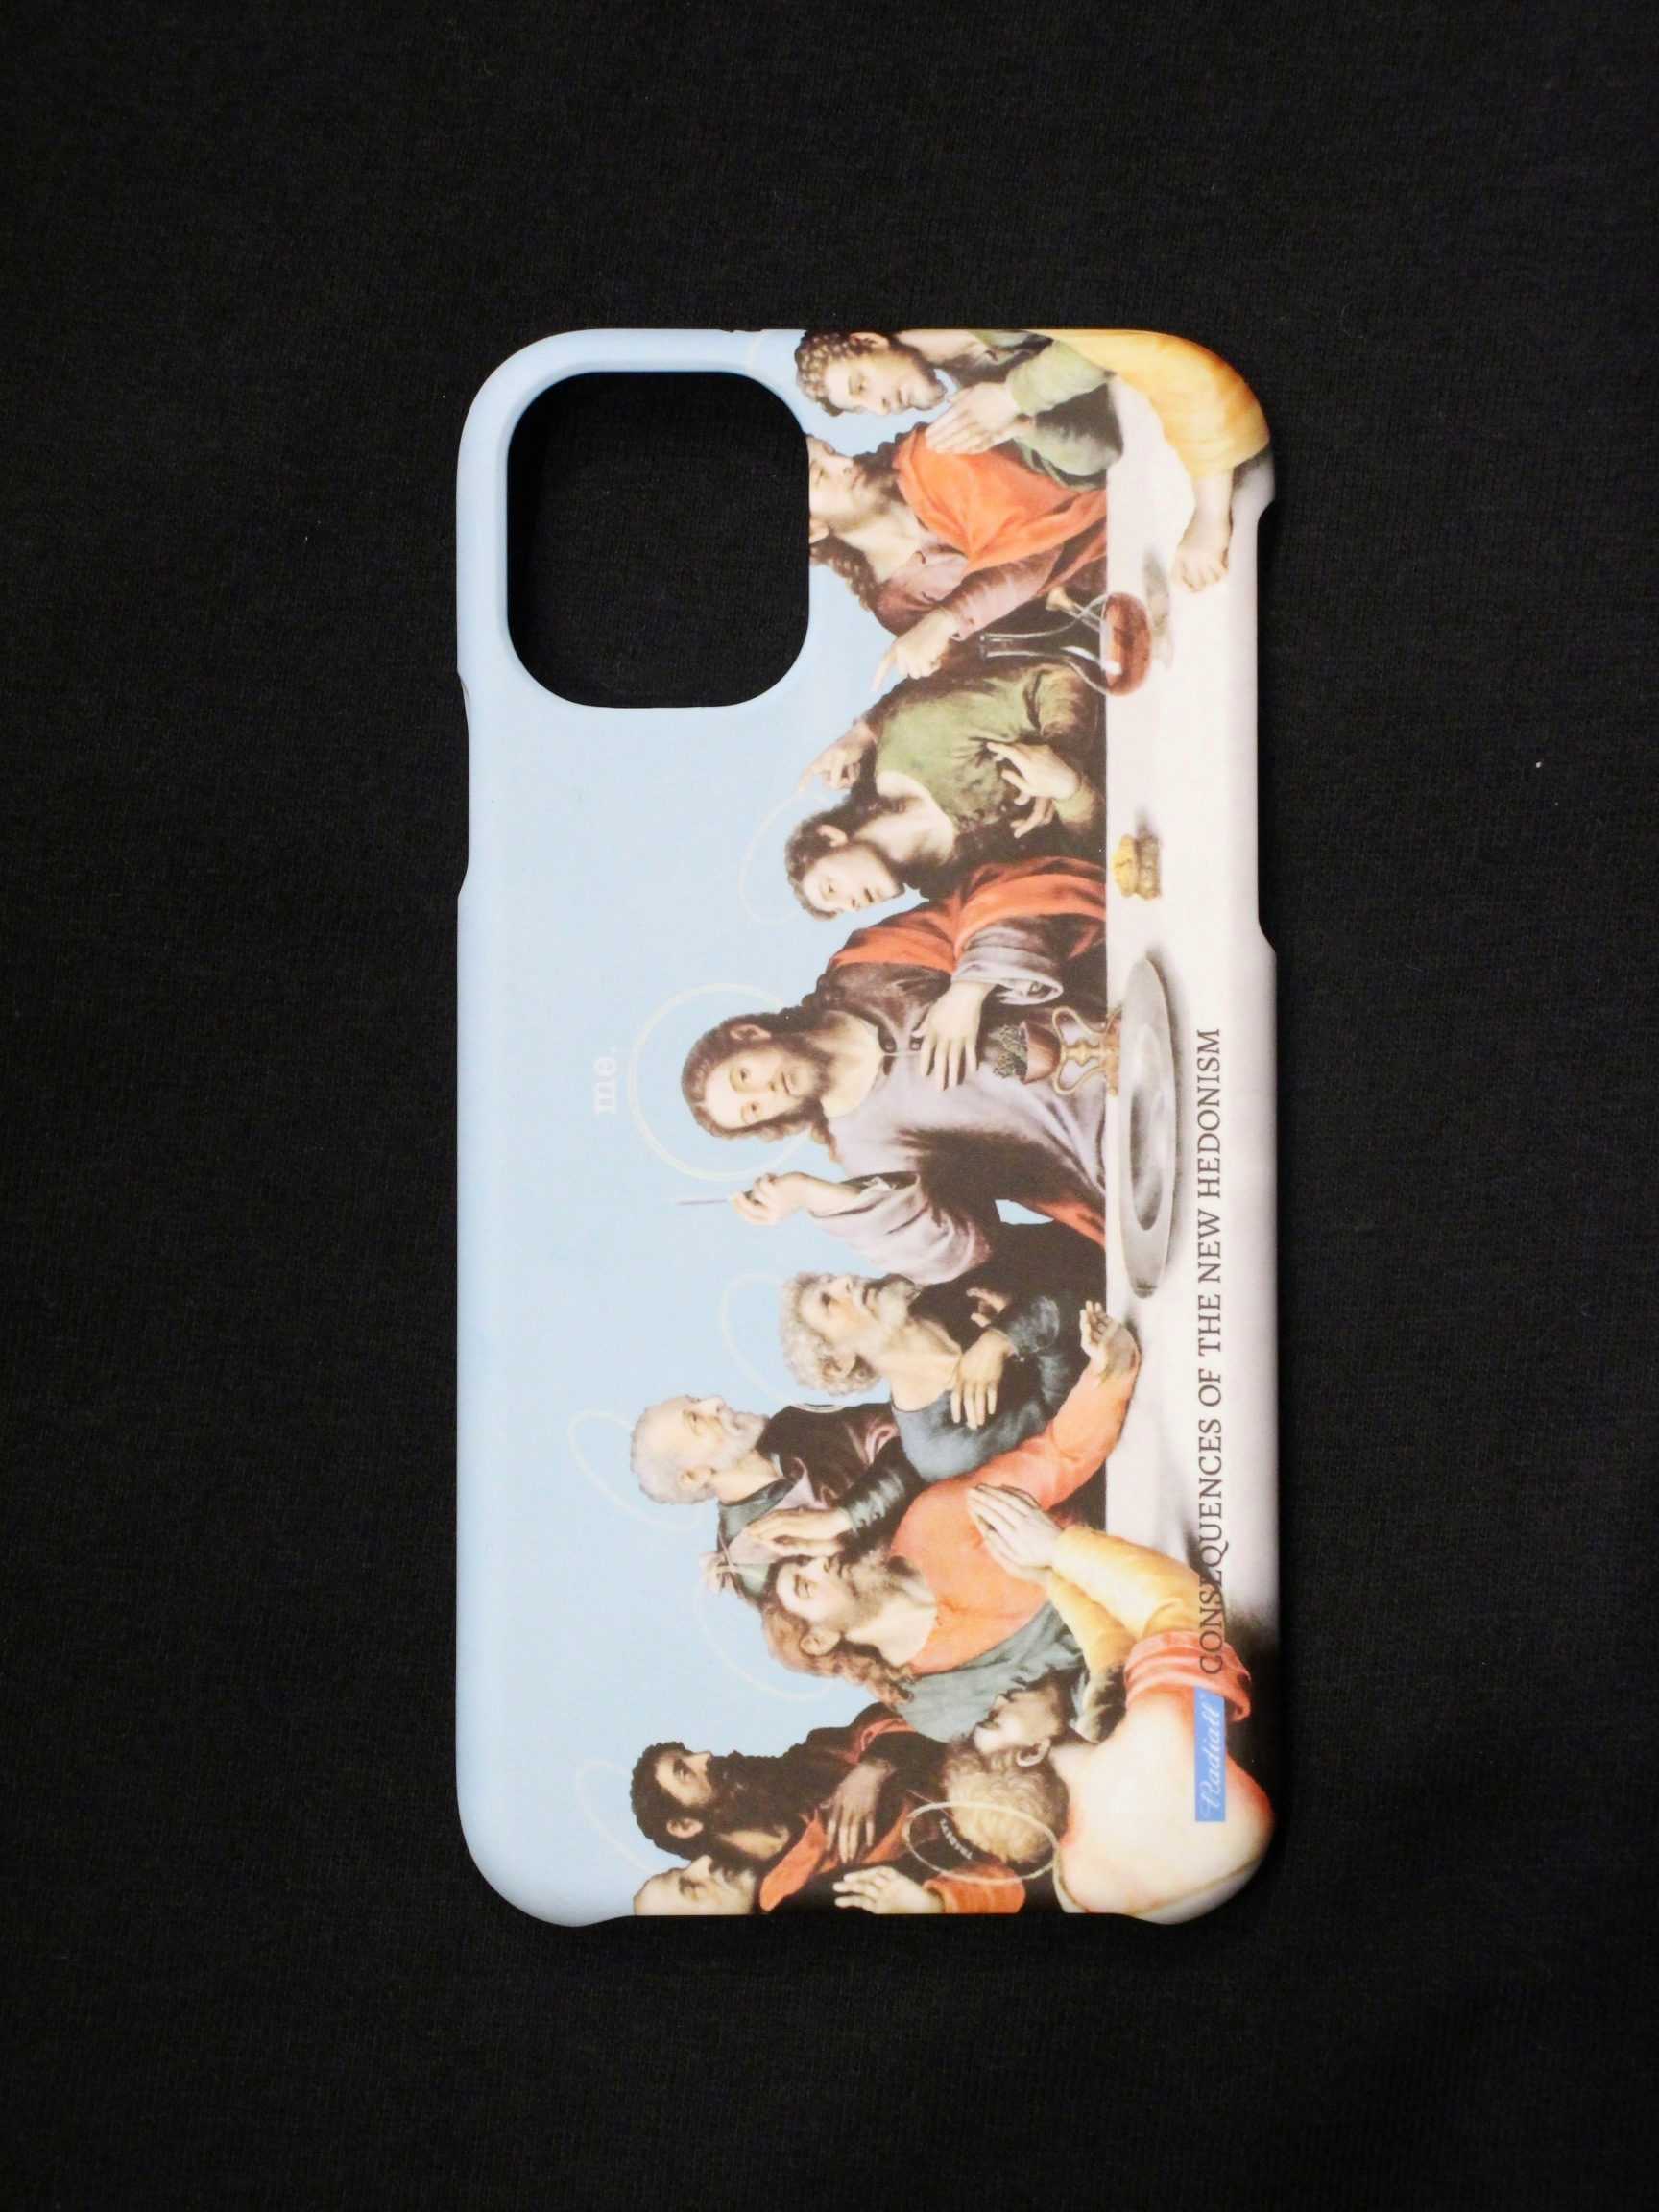 【NEW YEAR ITEM !!】 RADIALL  「HEDONISM - IPHONE CASE for 11」  iPhone 11 ケース